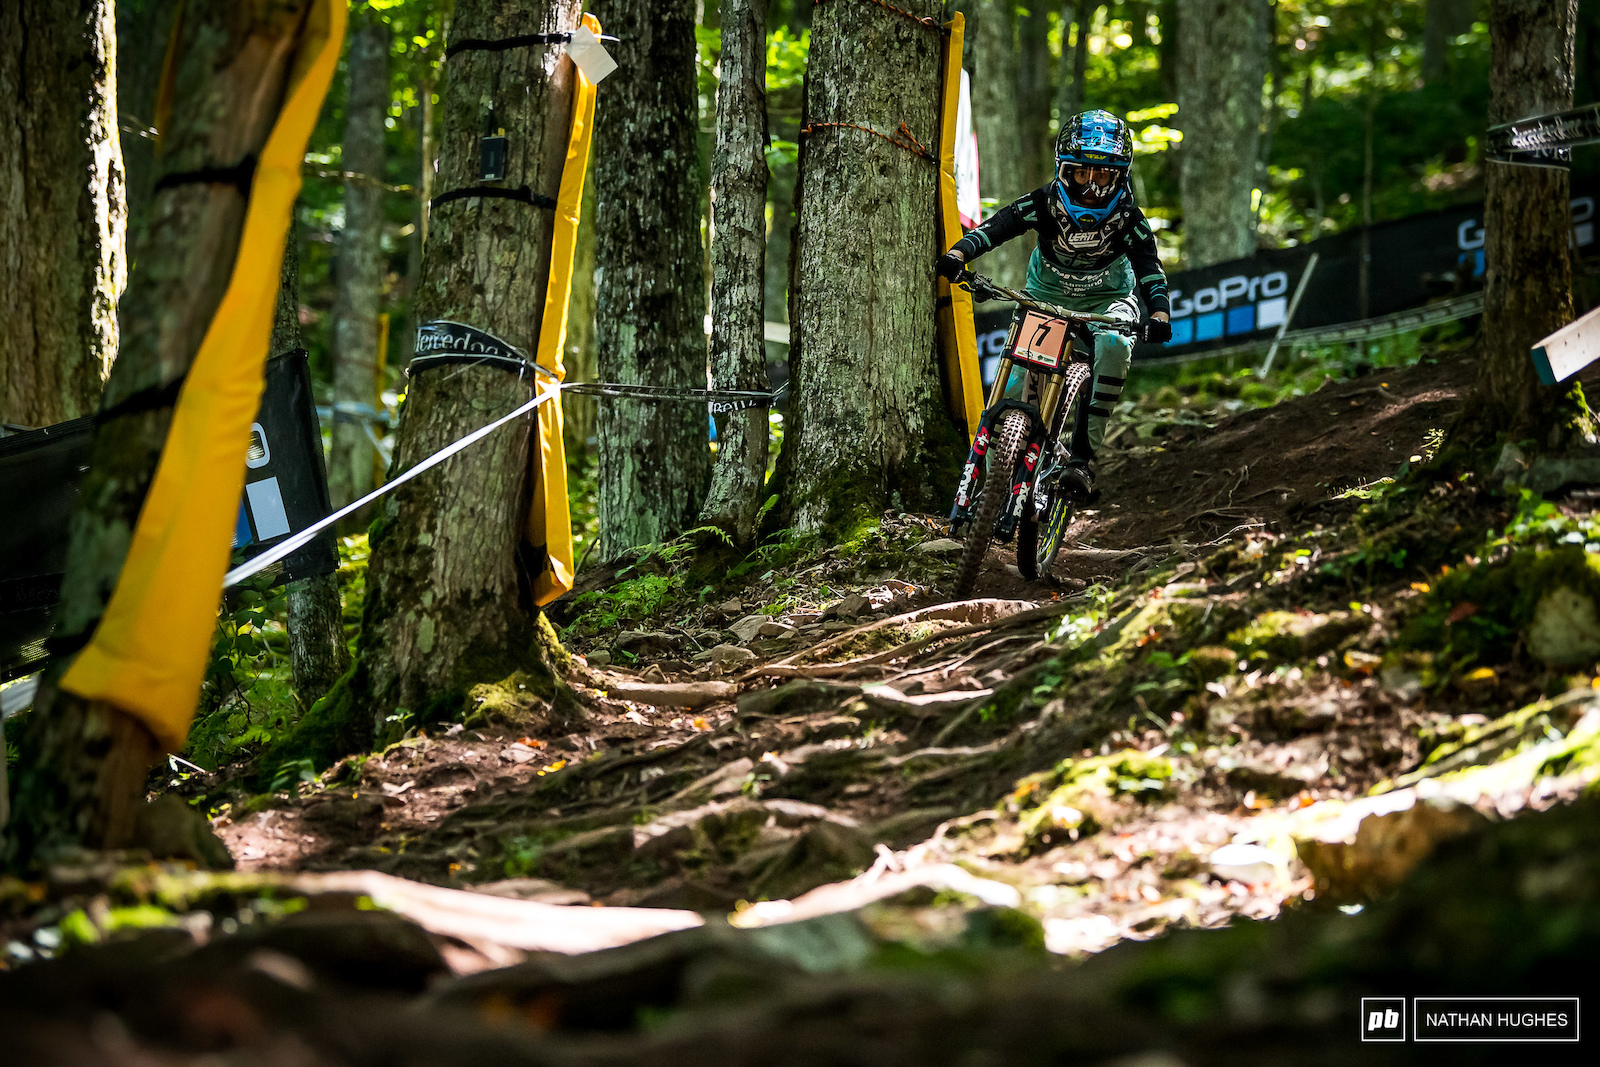 Emilie Siegenthaler has ramped things up after a steady start to 2019 8th today she has a shot at the podium.